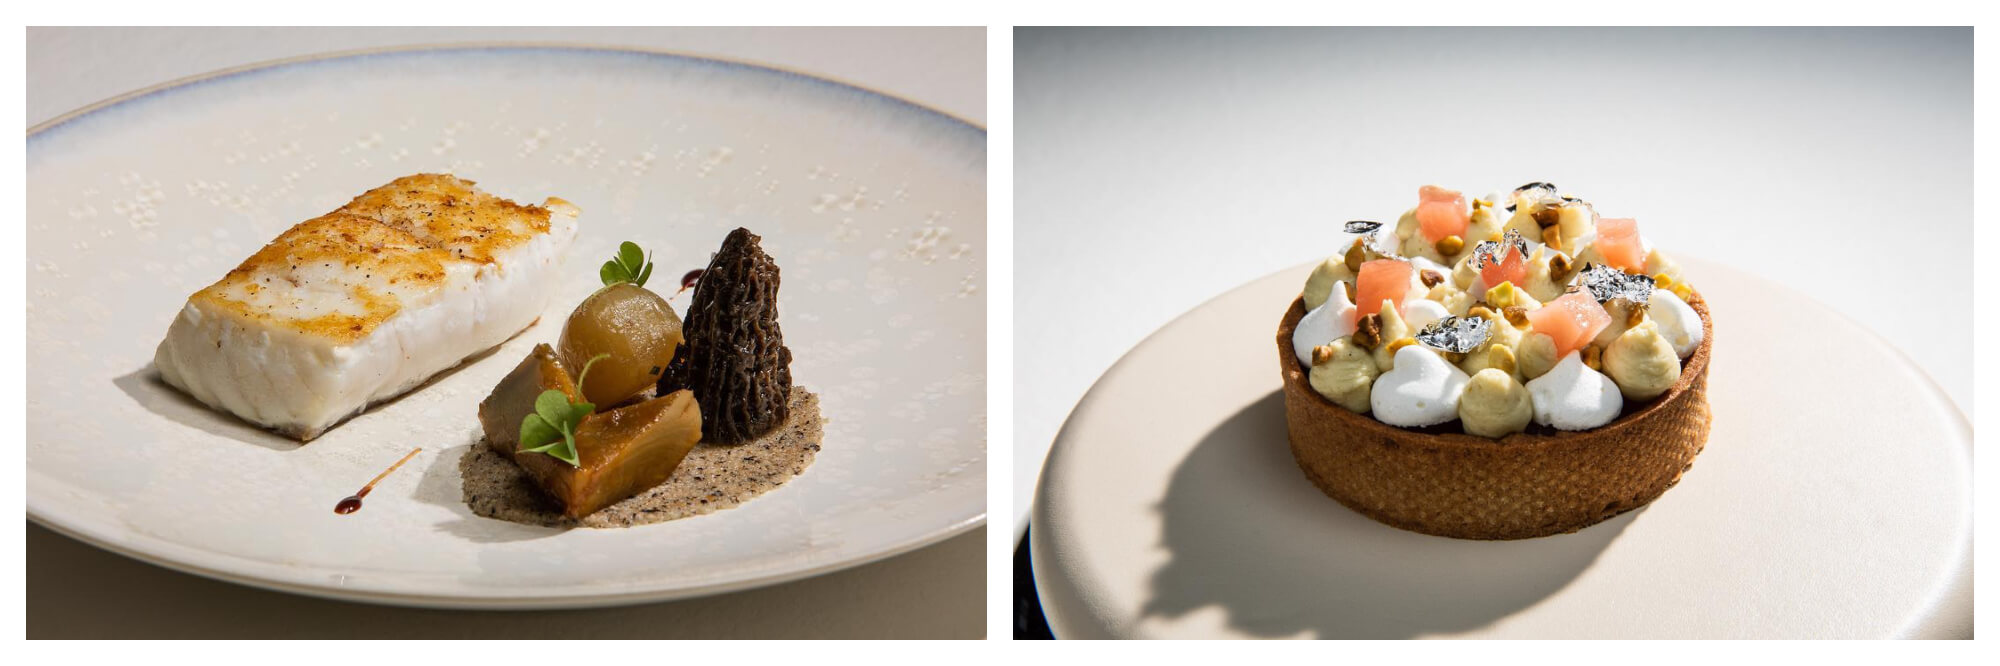 On left: A carefully-plated seafood dish is ready to be served at Maximin Hellio, a one-star Michelin restaurant in Deauville. On right: Dessert is served in the form of a petite fruit and cream tart at the one-star restaurant Maximin Hellio in Deauville.